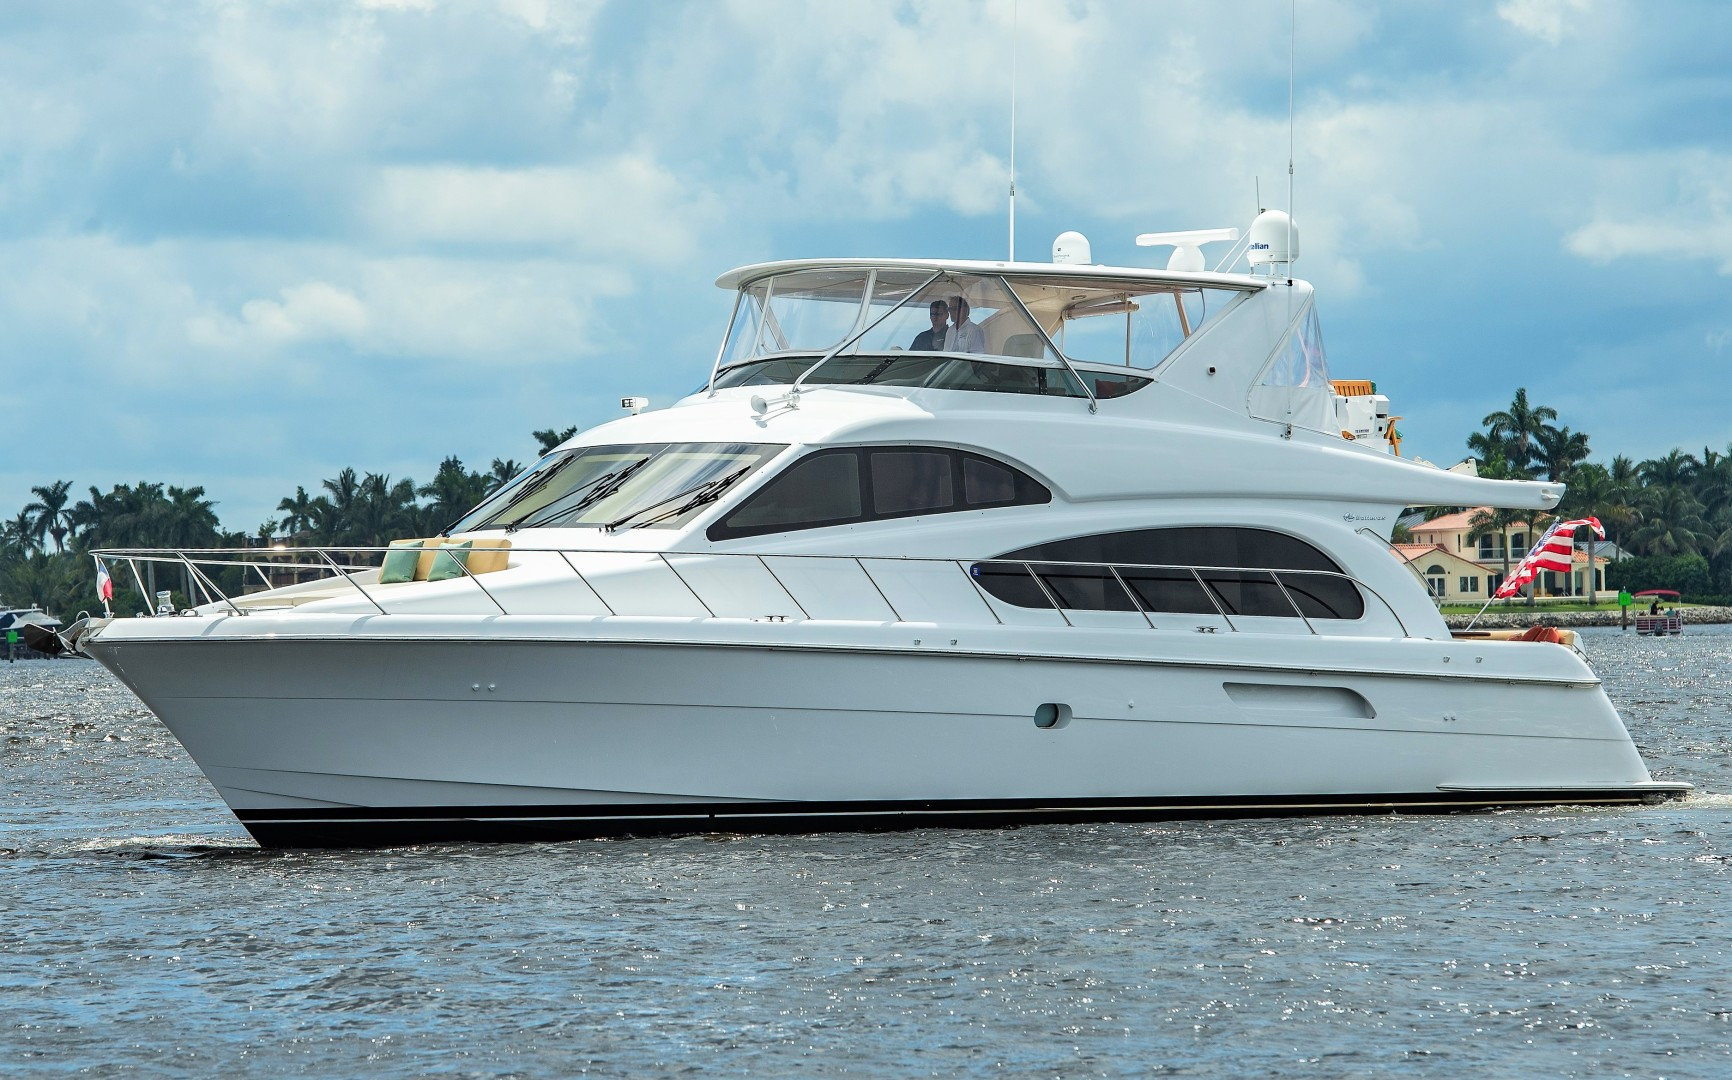 Picture Of: 64' Hatteras 64 Motoryacht 2006 Yacht For Sale   2 of 3